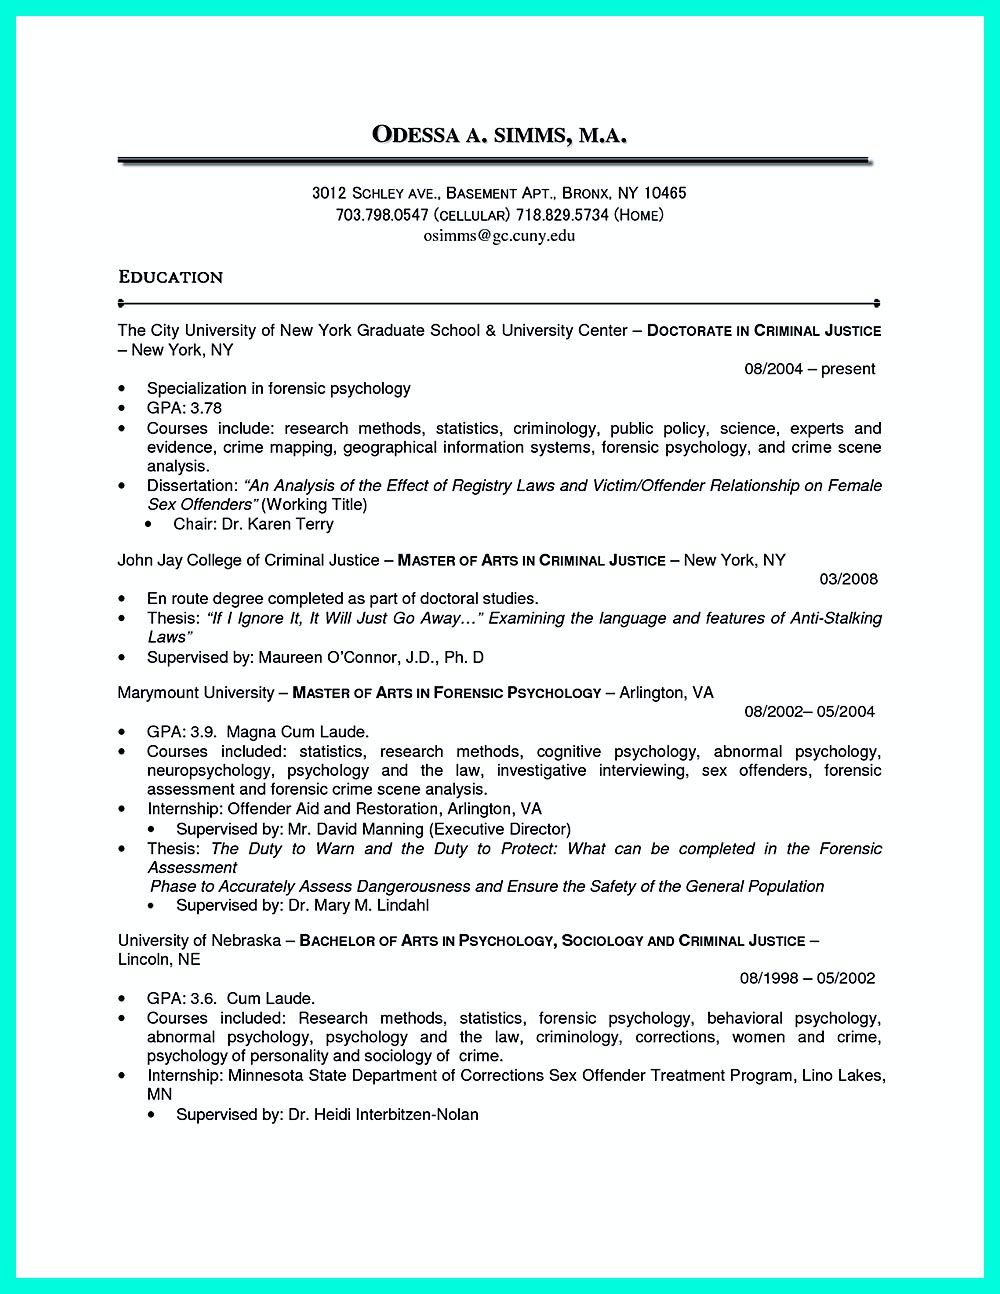 Criminal Justice Resume Uses Summary Section Of The Qualifications To  Highlight Your Experience From The Previous Work Or From Training If You  Are A R... ...